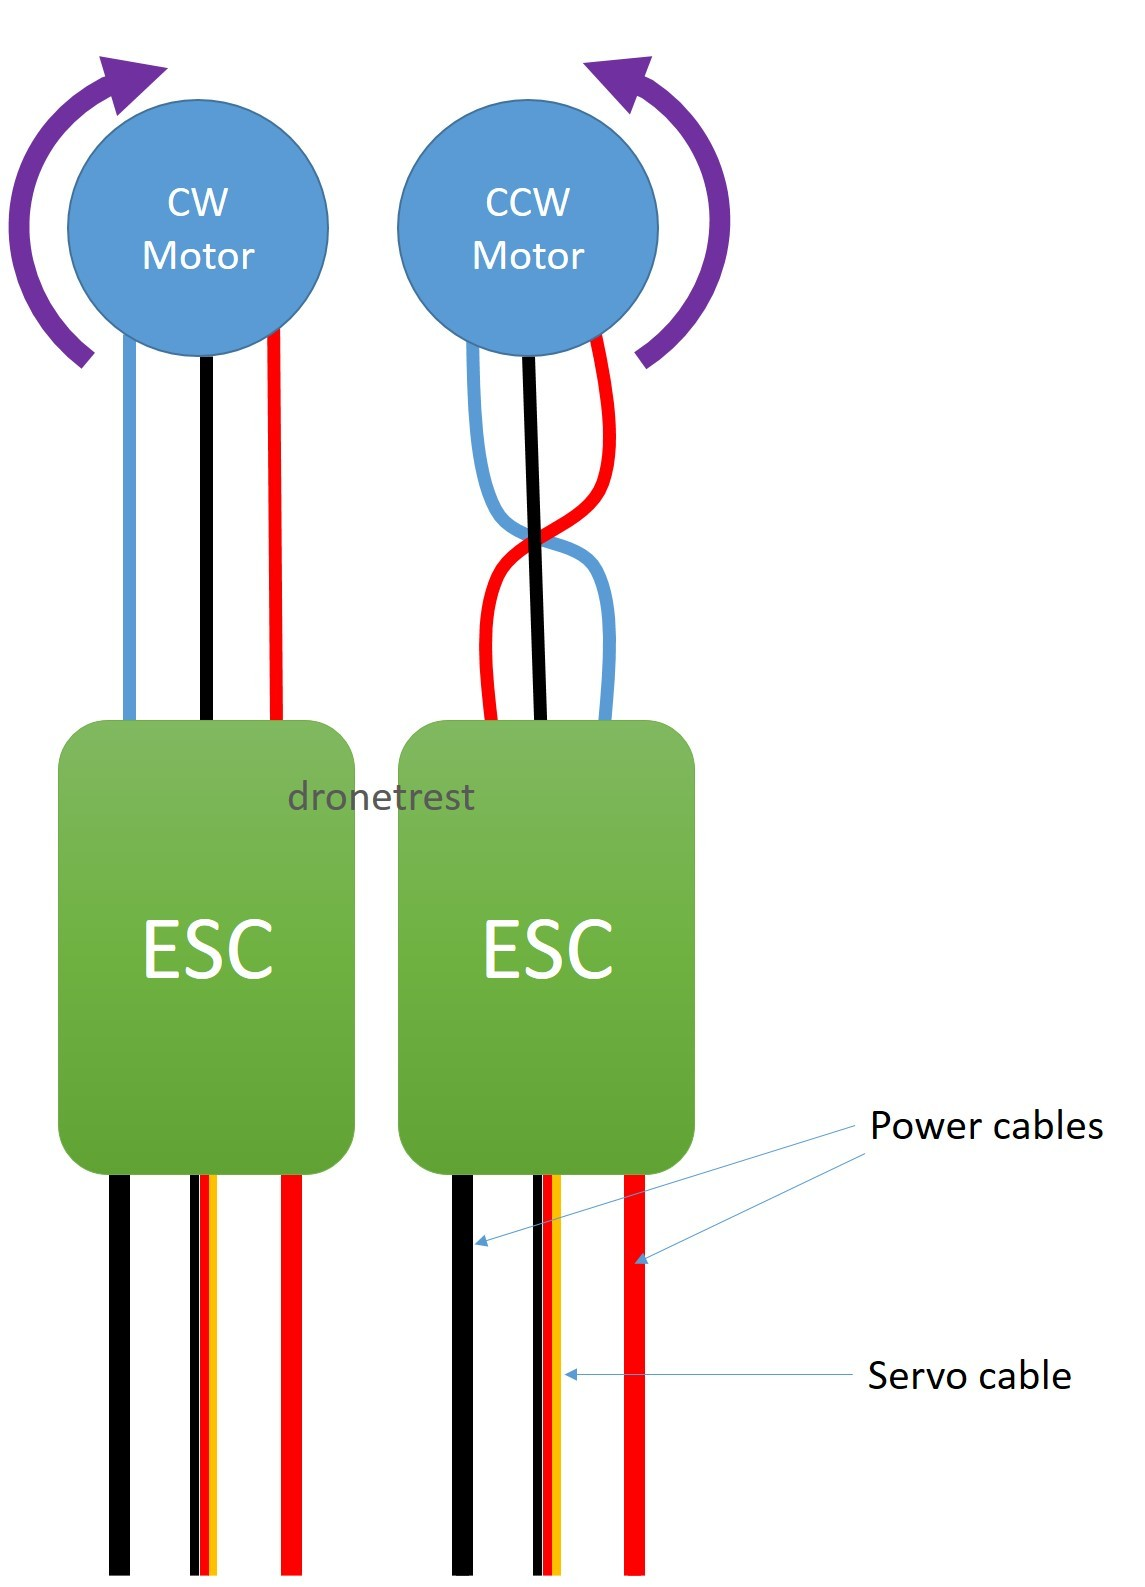 brushless motor wiring diagram for ac unit esc to connection guide how reverse your